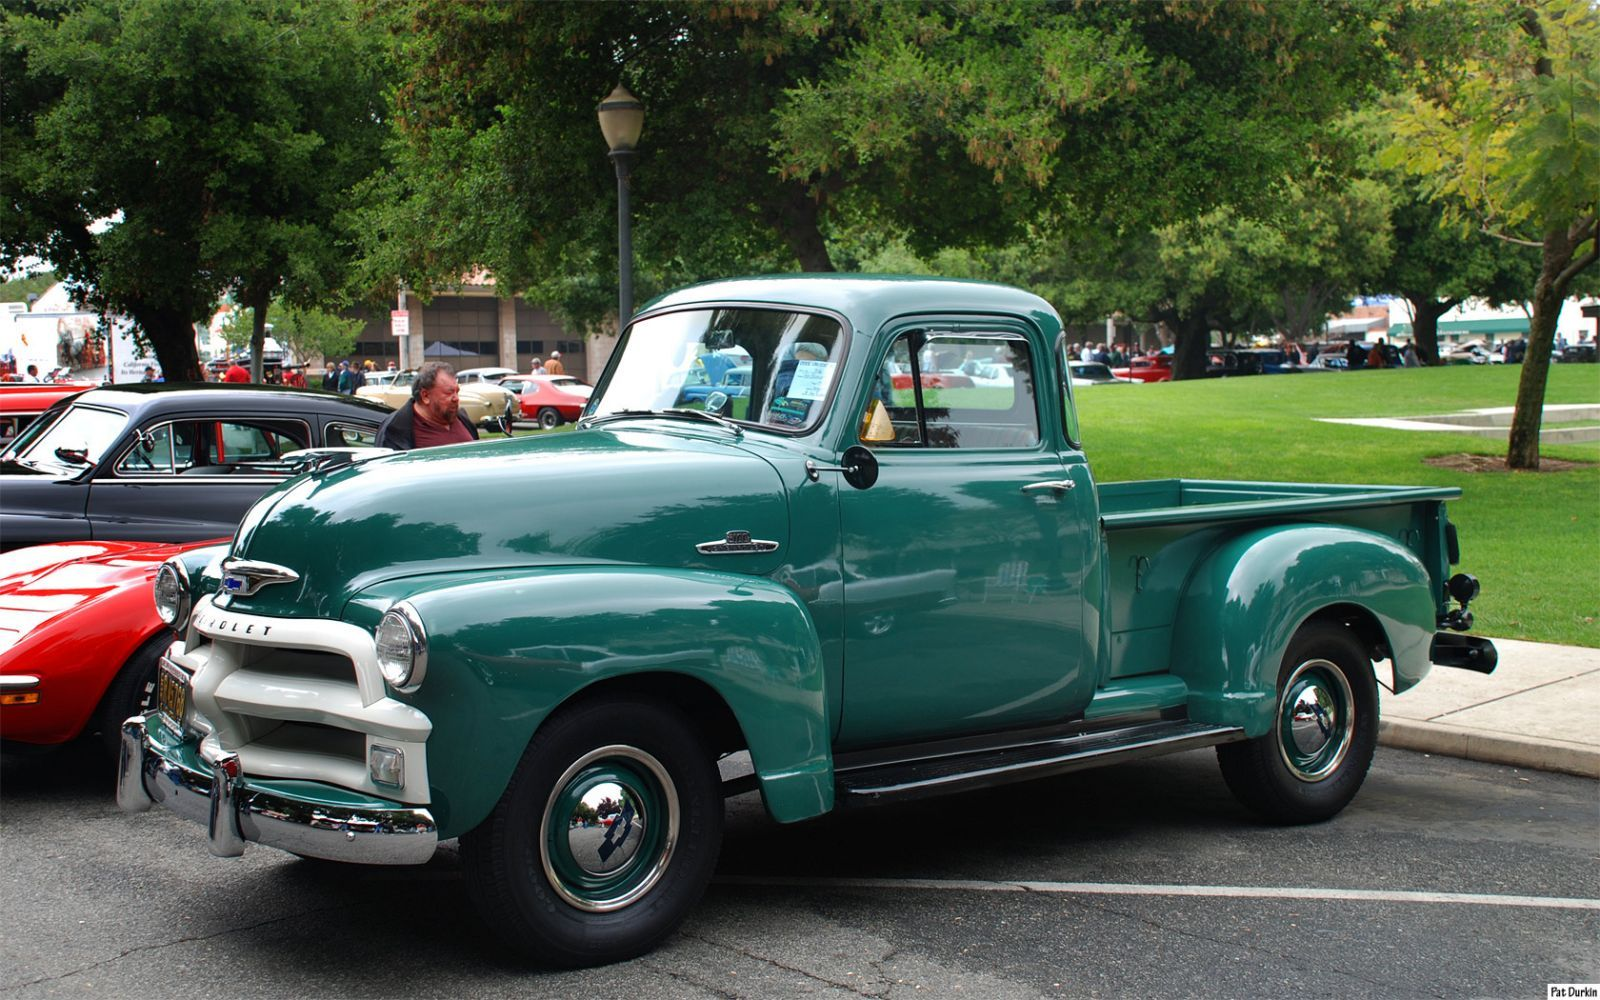 1955 Chevrolet 3100 Pickup First Series Michelle And I Fought